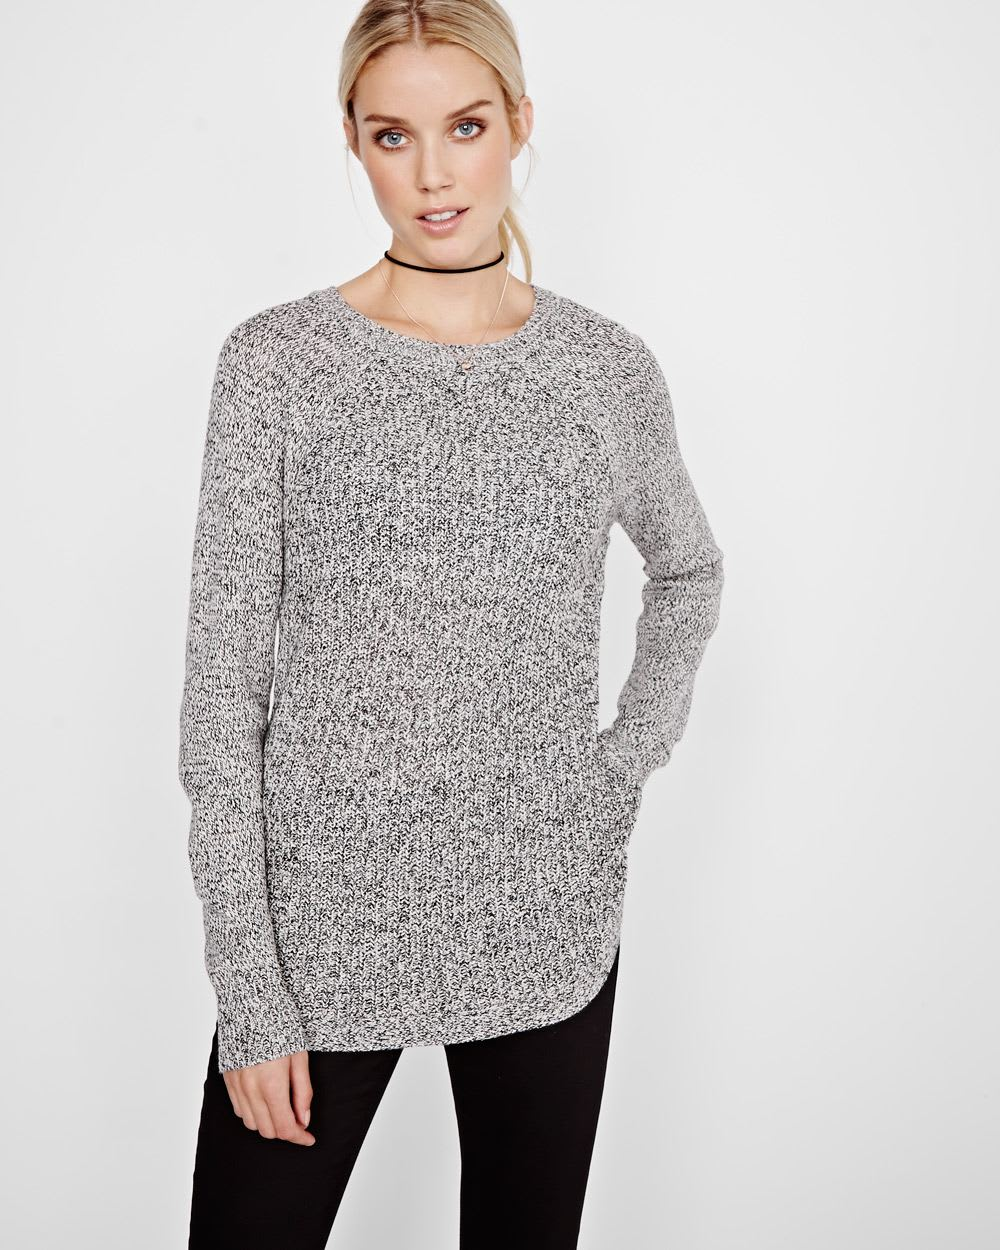 Marled tunic sweater with side zippers | RW&CO.